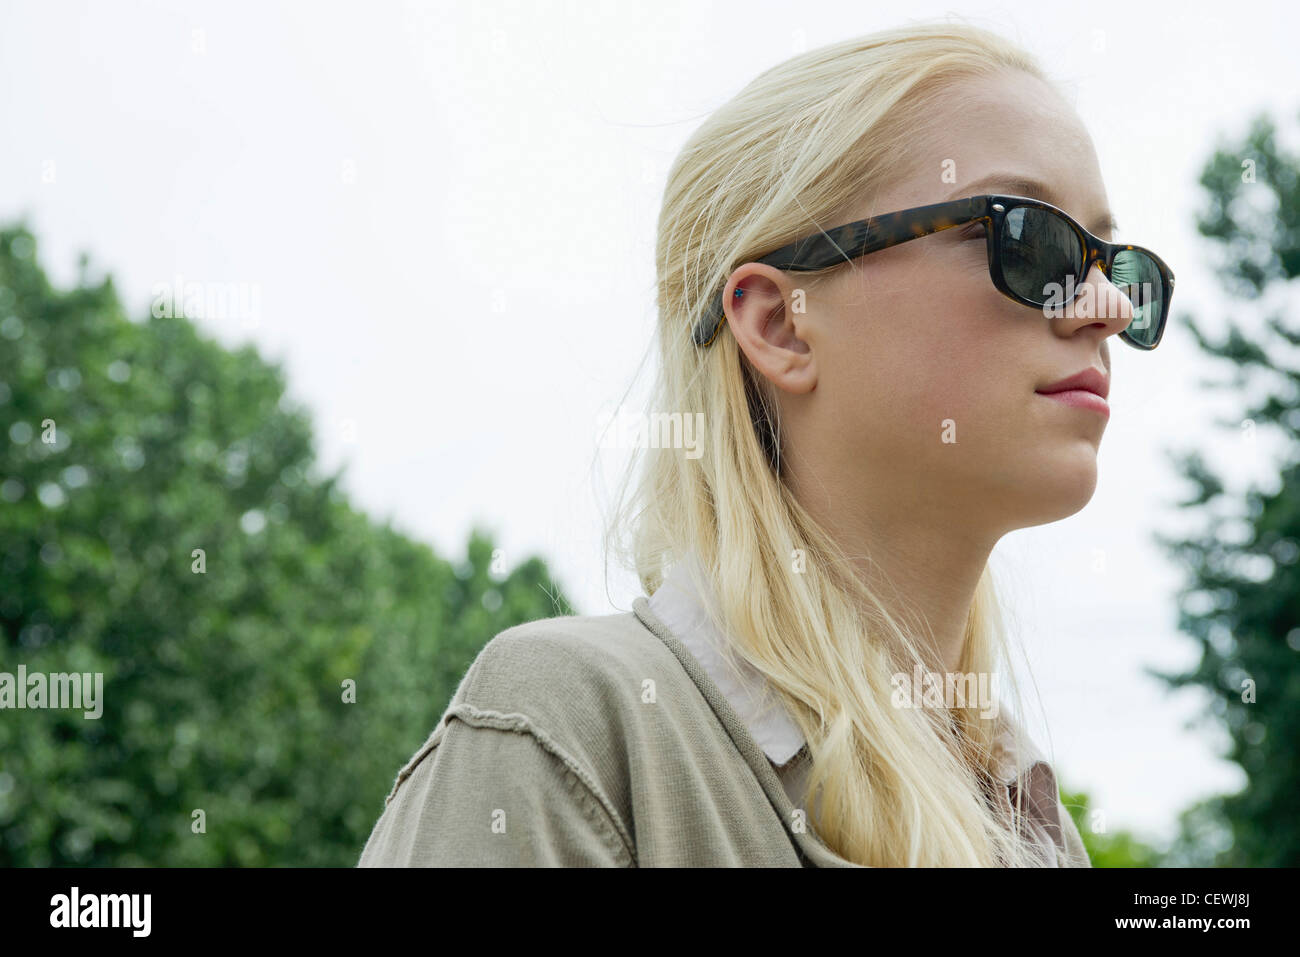 Young woman wearing sunglasses, looking away in thought - Stock Image